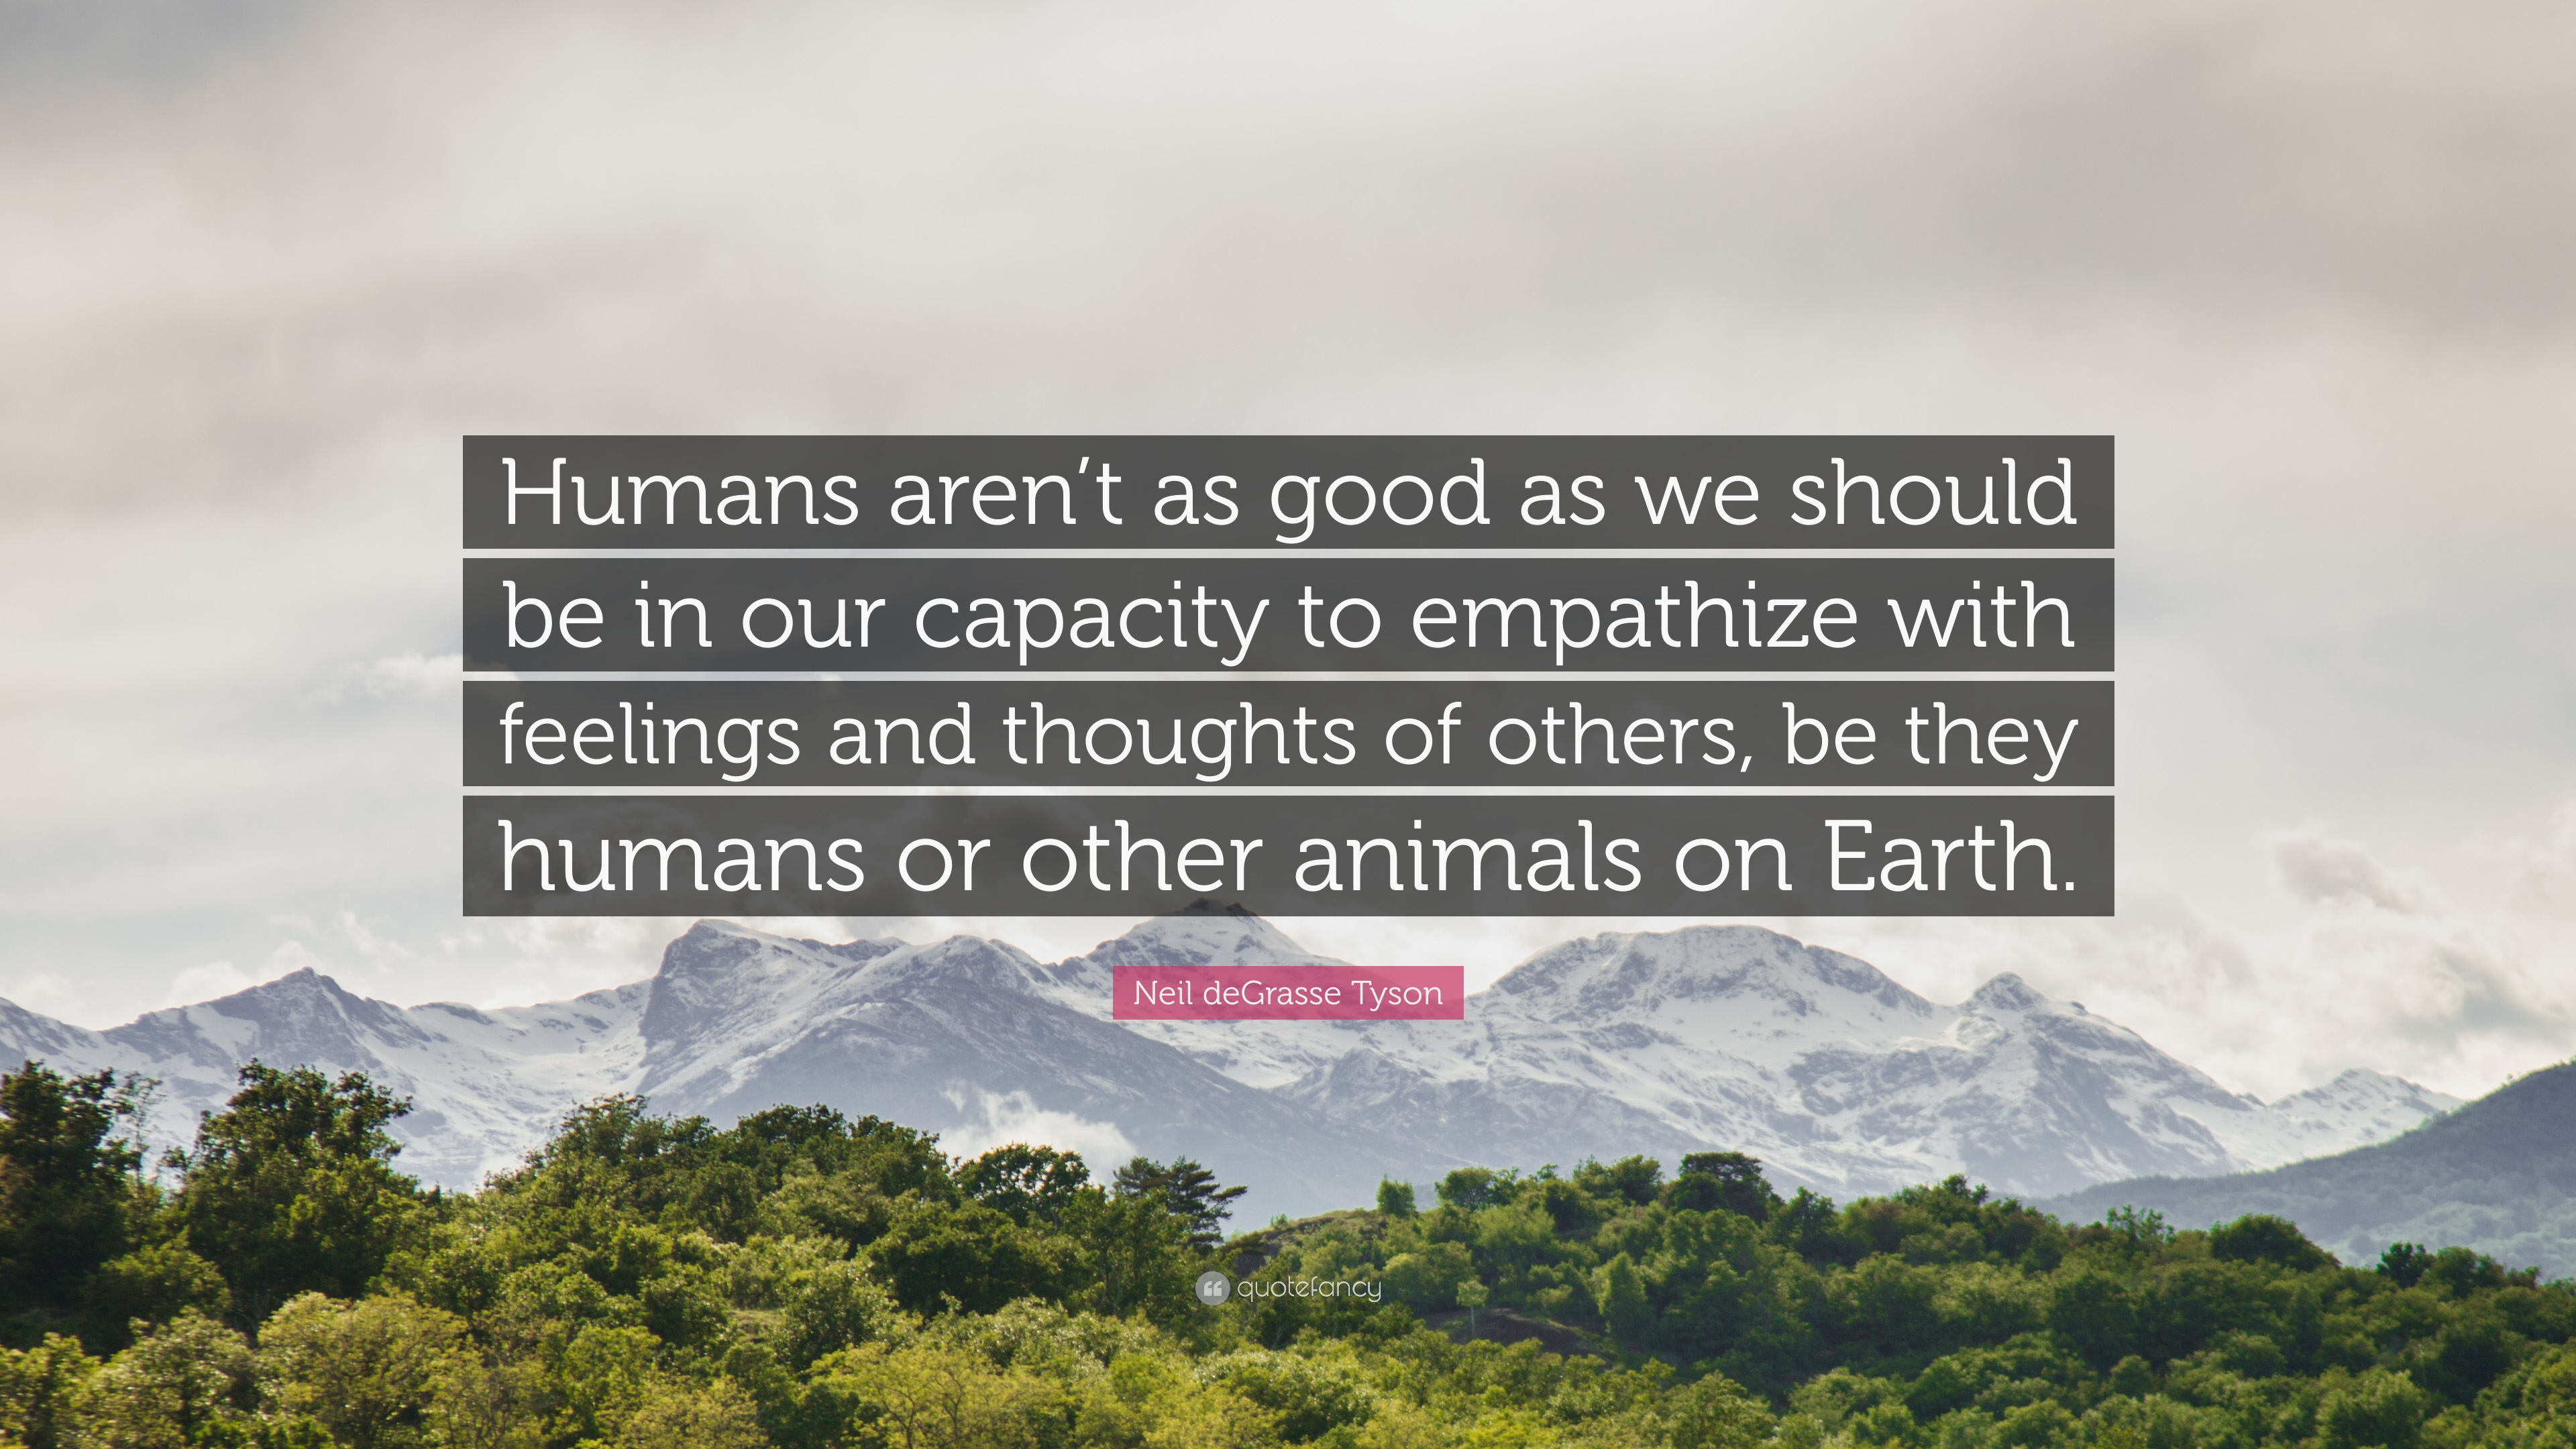 What is the lowest animals about? and do u agree with him?